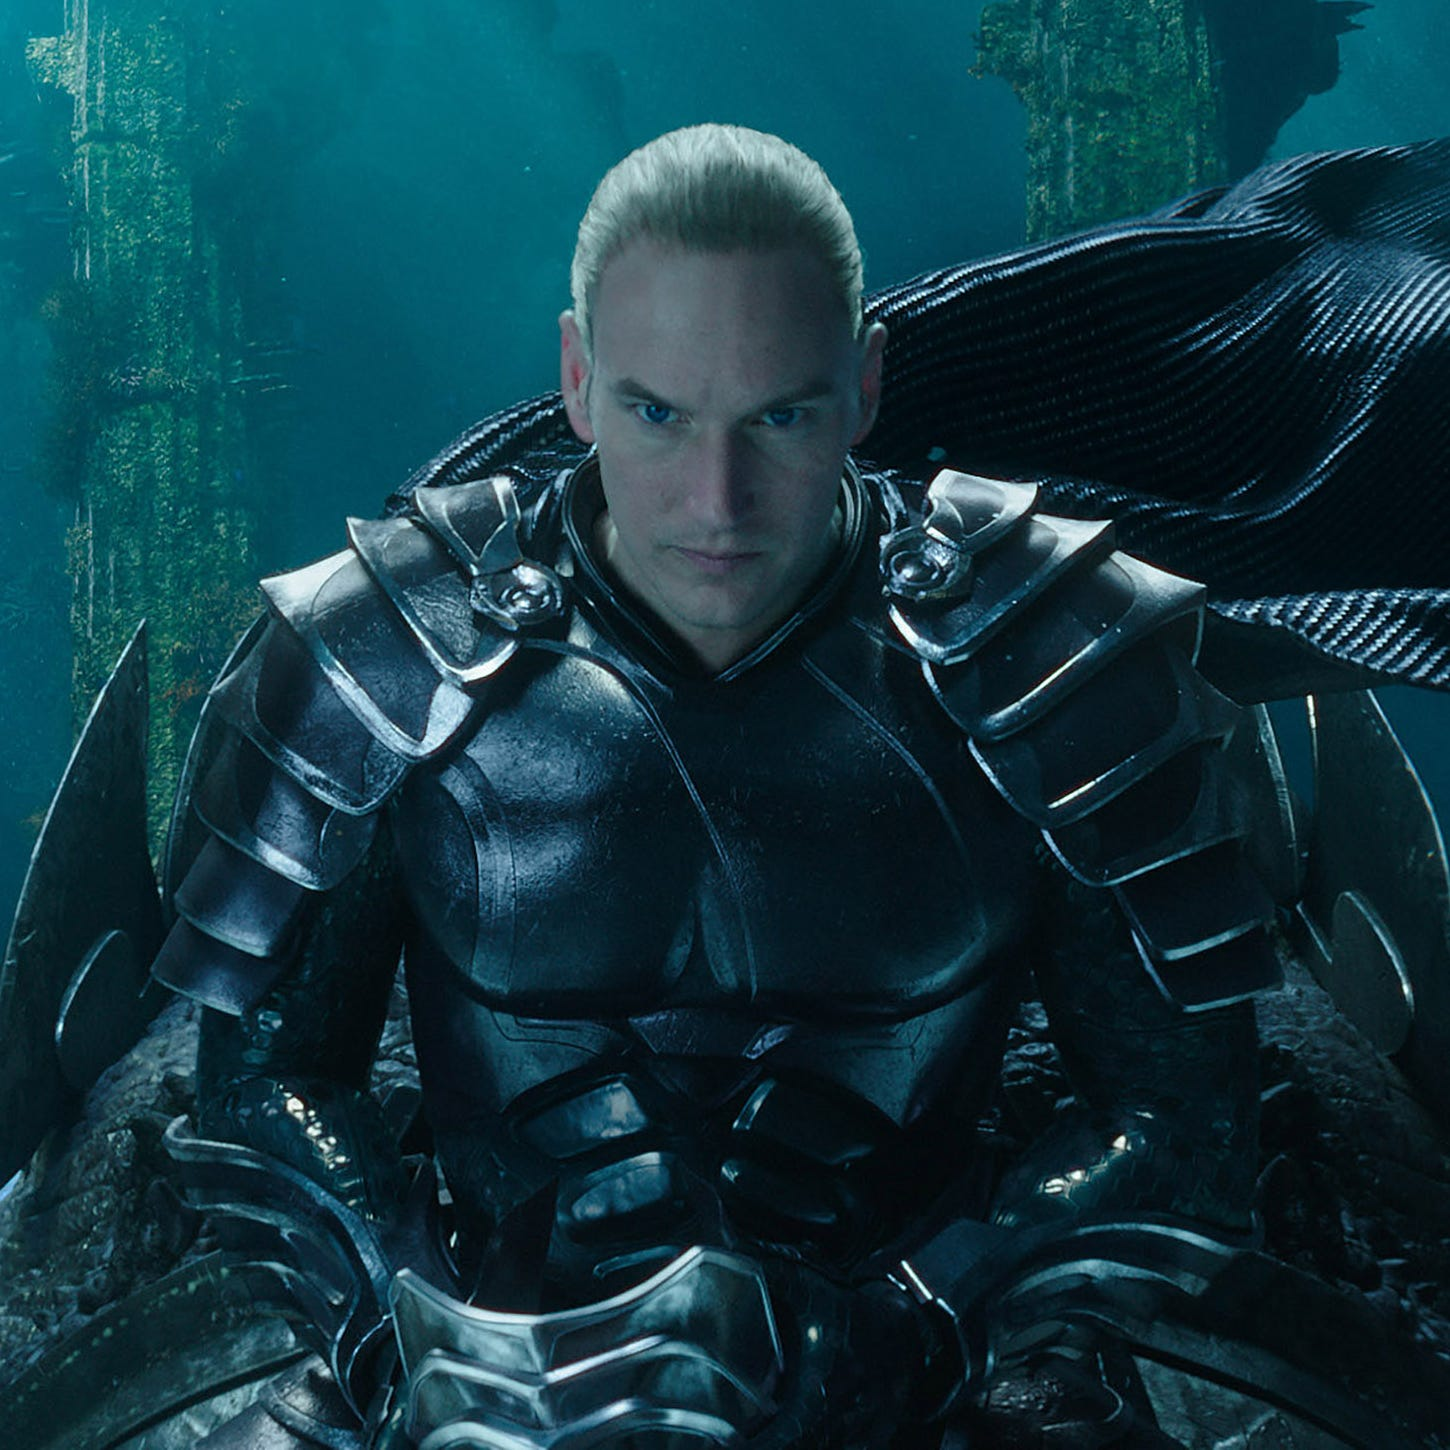 Regal to bring 'Aquaman' star Patrick Wilson to Knoxville early screening event